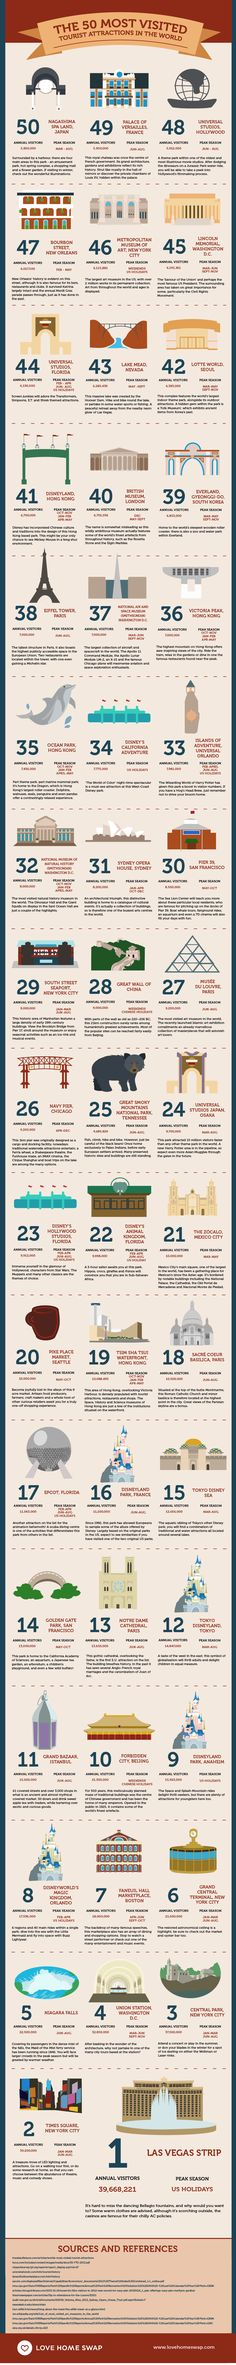 The World's 50 Most Visited Tourist Attractions in the World. 12/50 not bad!